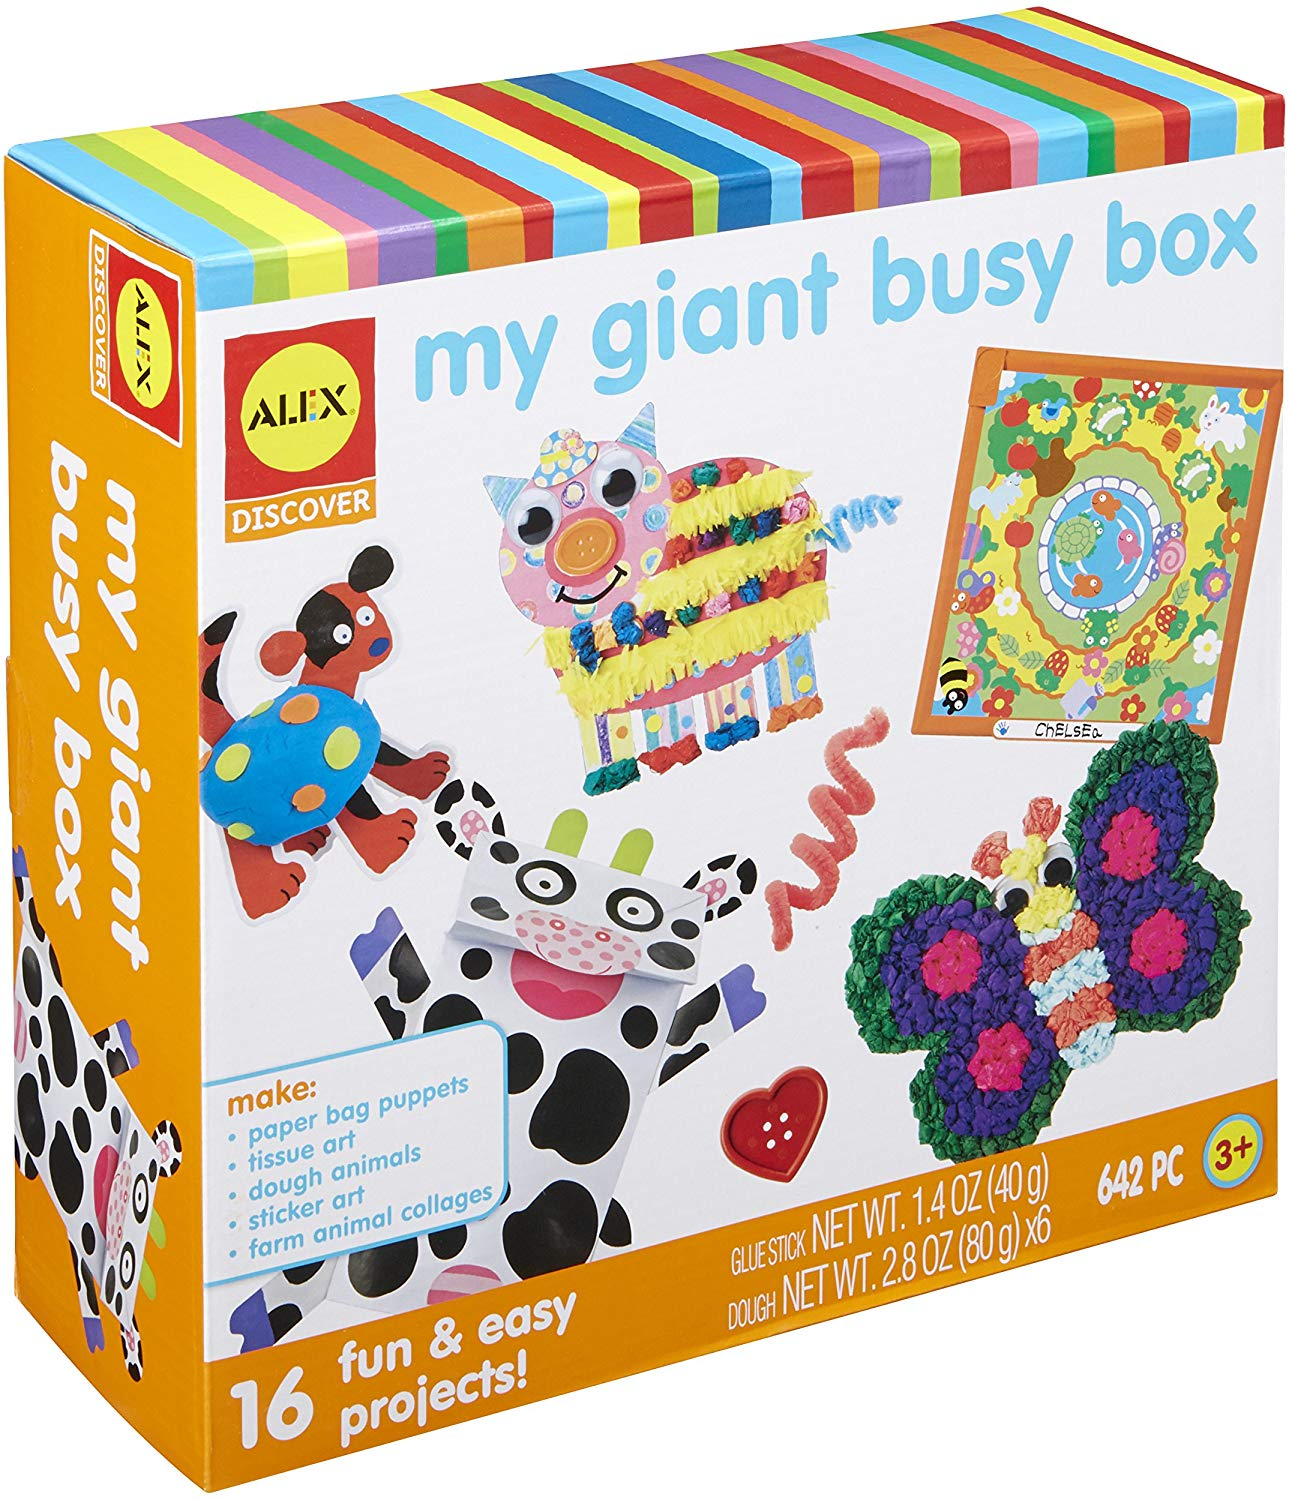 Giant Busy Craft Box